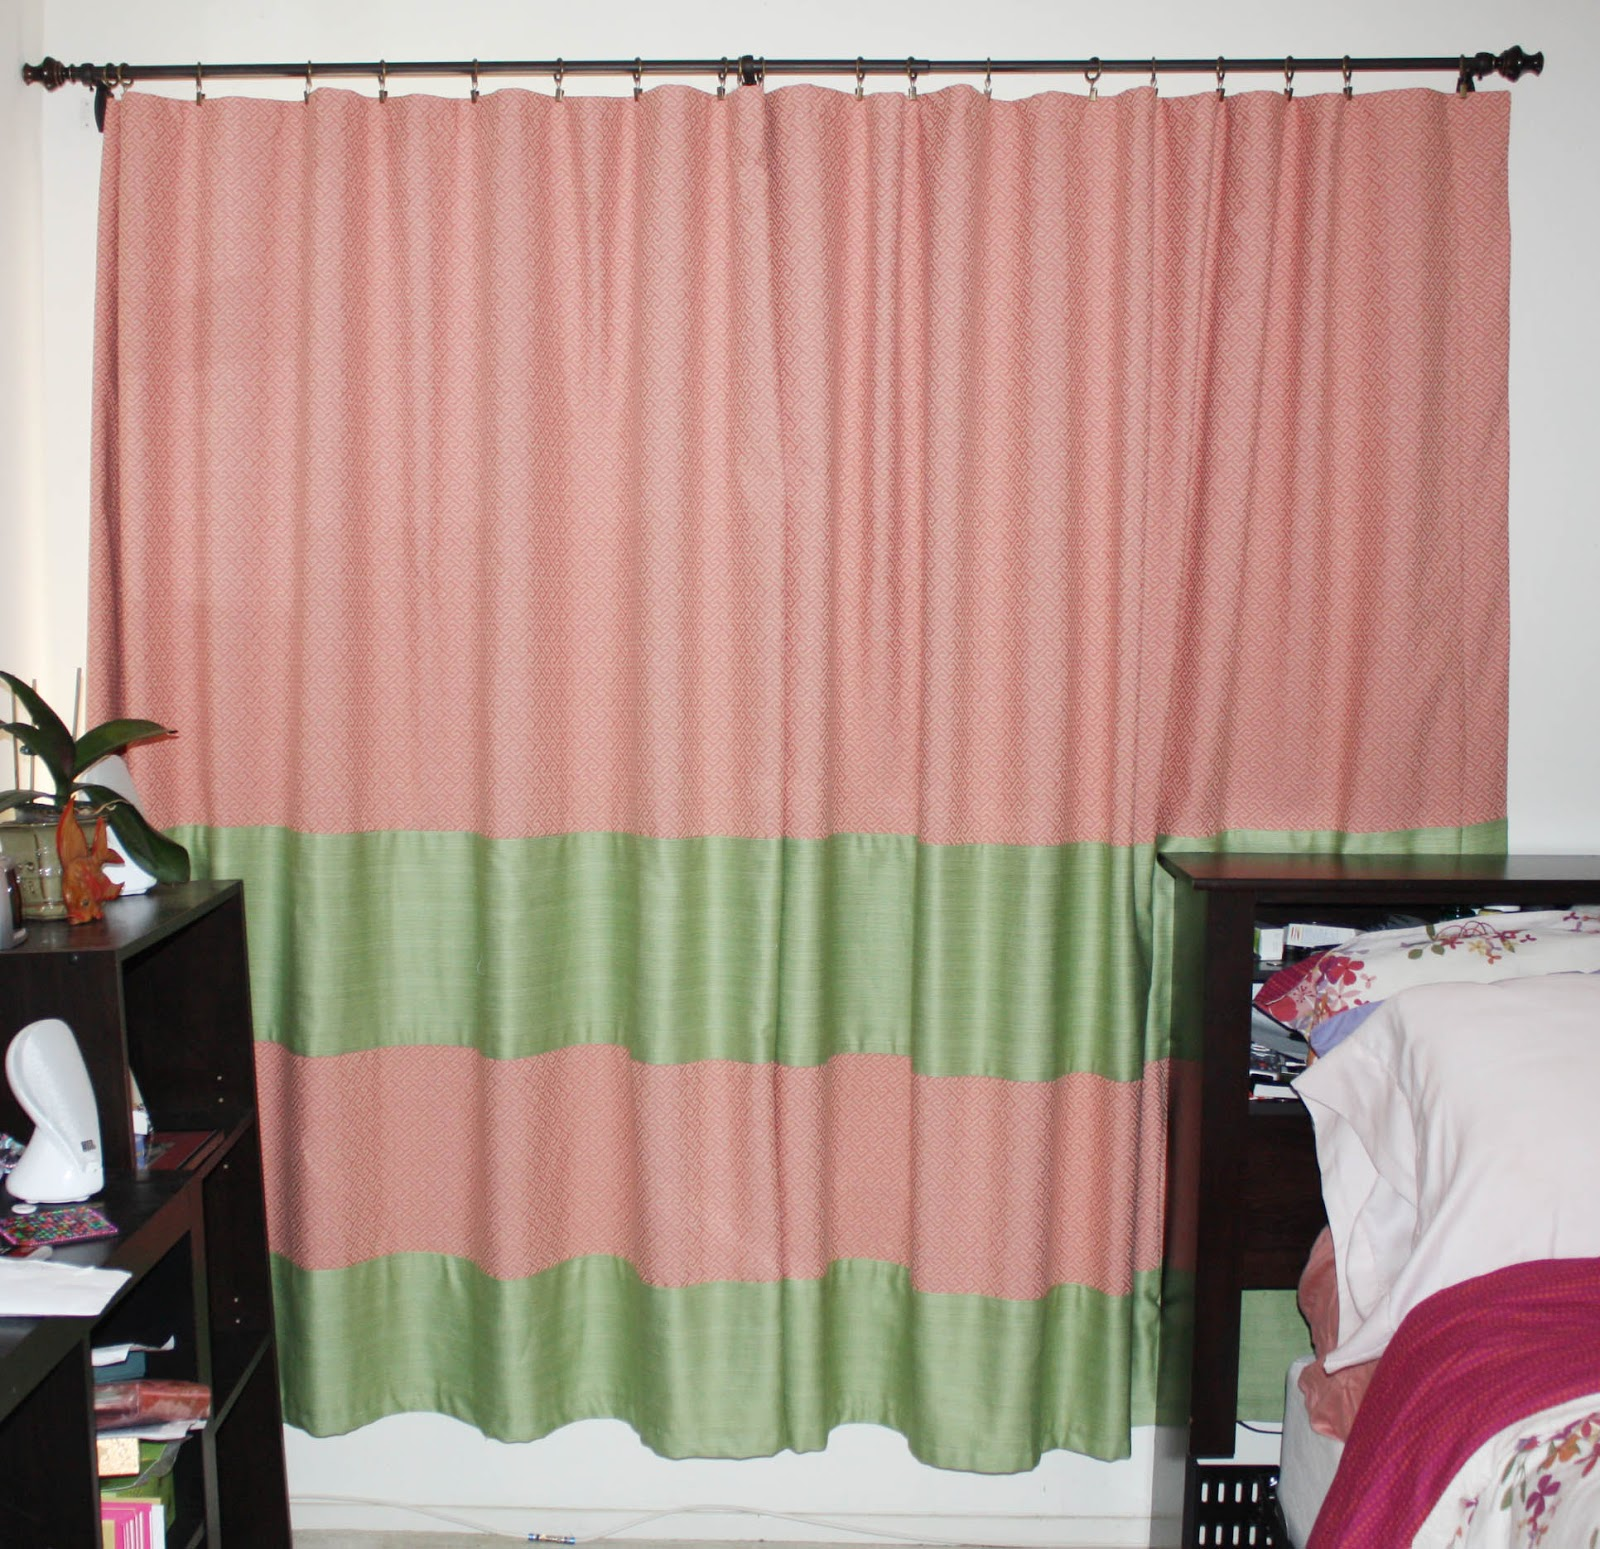 skinnyminhy 39 s adventures in food crafting land diy extra wide blackout curtain panels. Black Bedroom Furniture Sets. Home Design Ideas